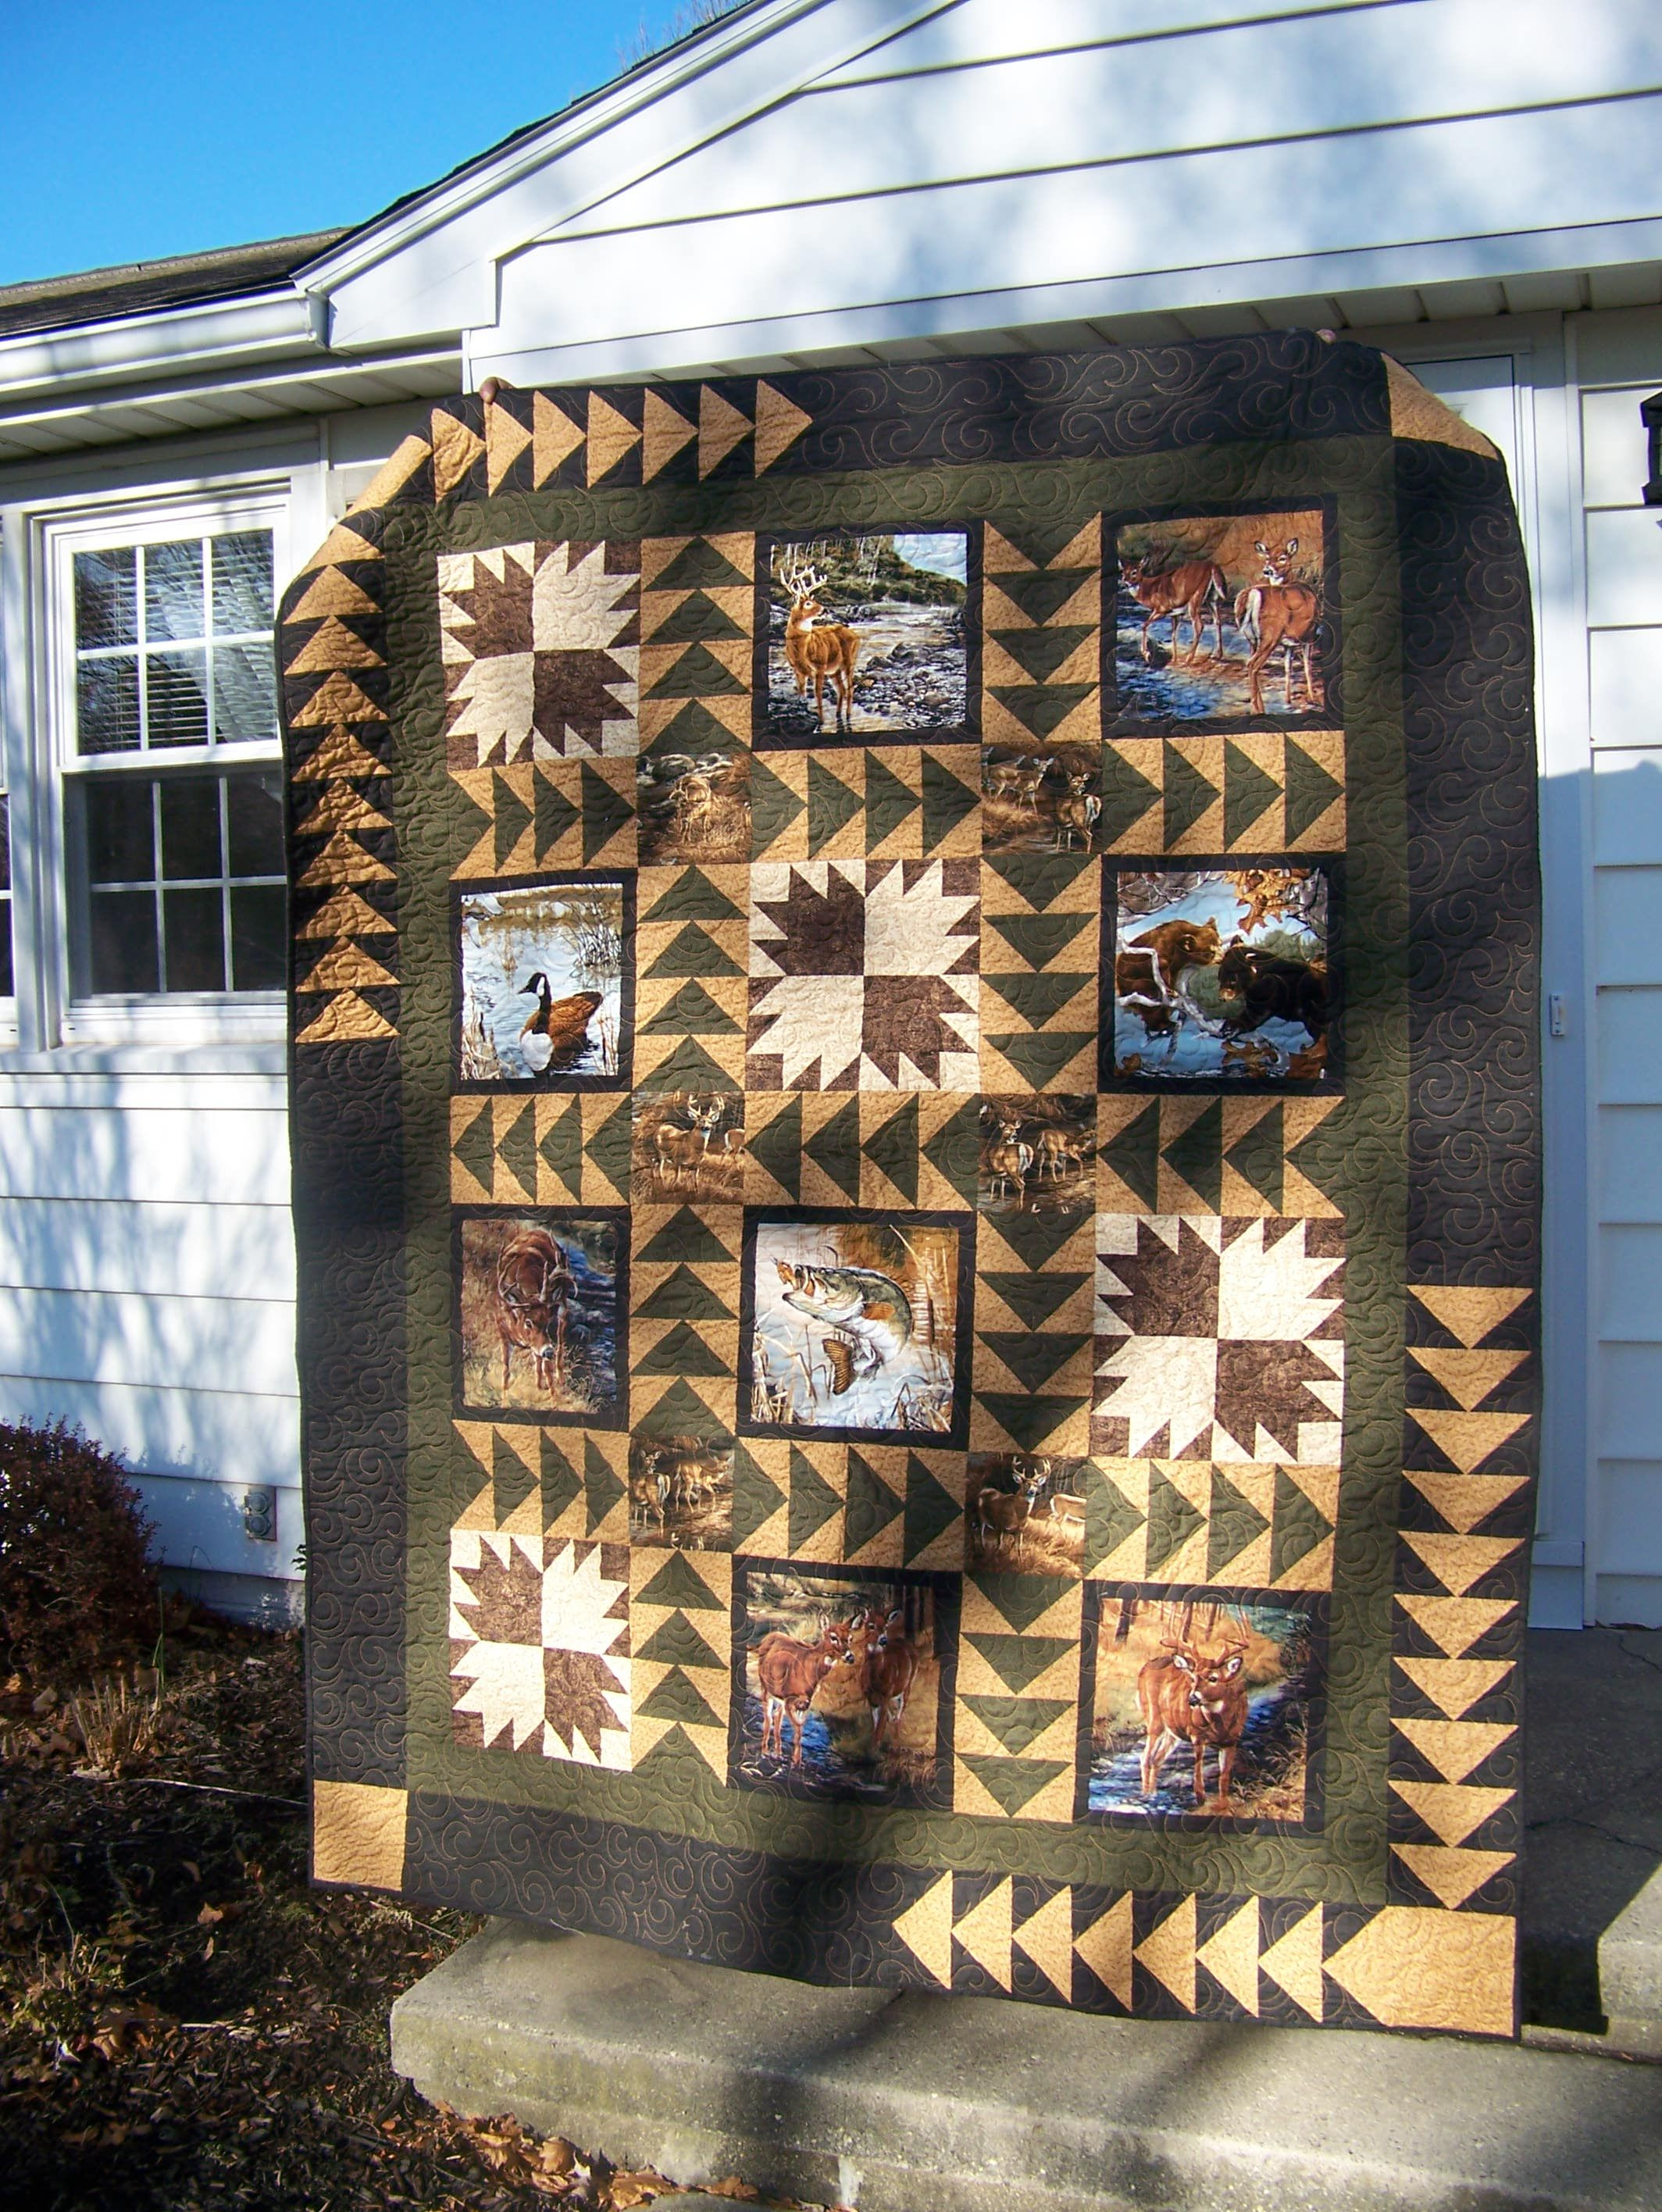 picture cozy brown for quilt bedding classic sets b construct pillows big carpet comfortable wall bedspreads and designs sleep with rectangle quilts charming bedroom wooden blanket smith windows soft frame floor